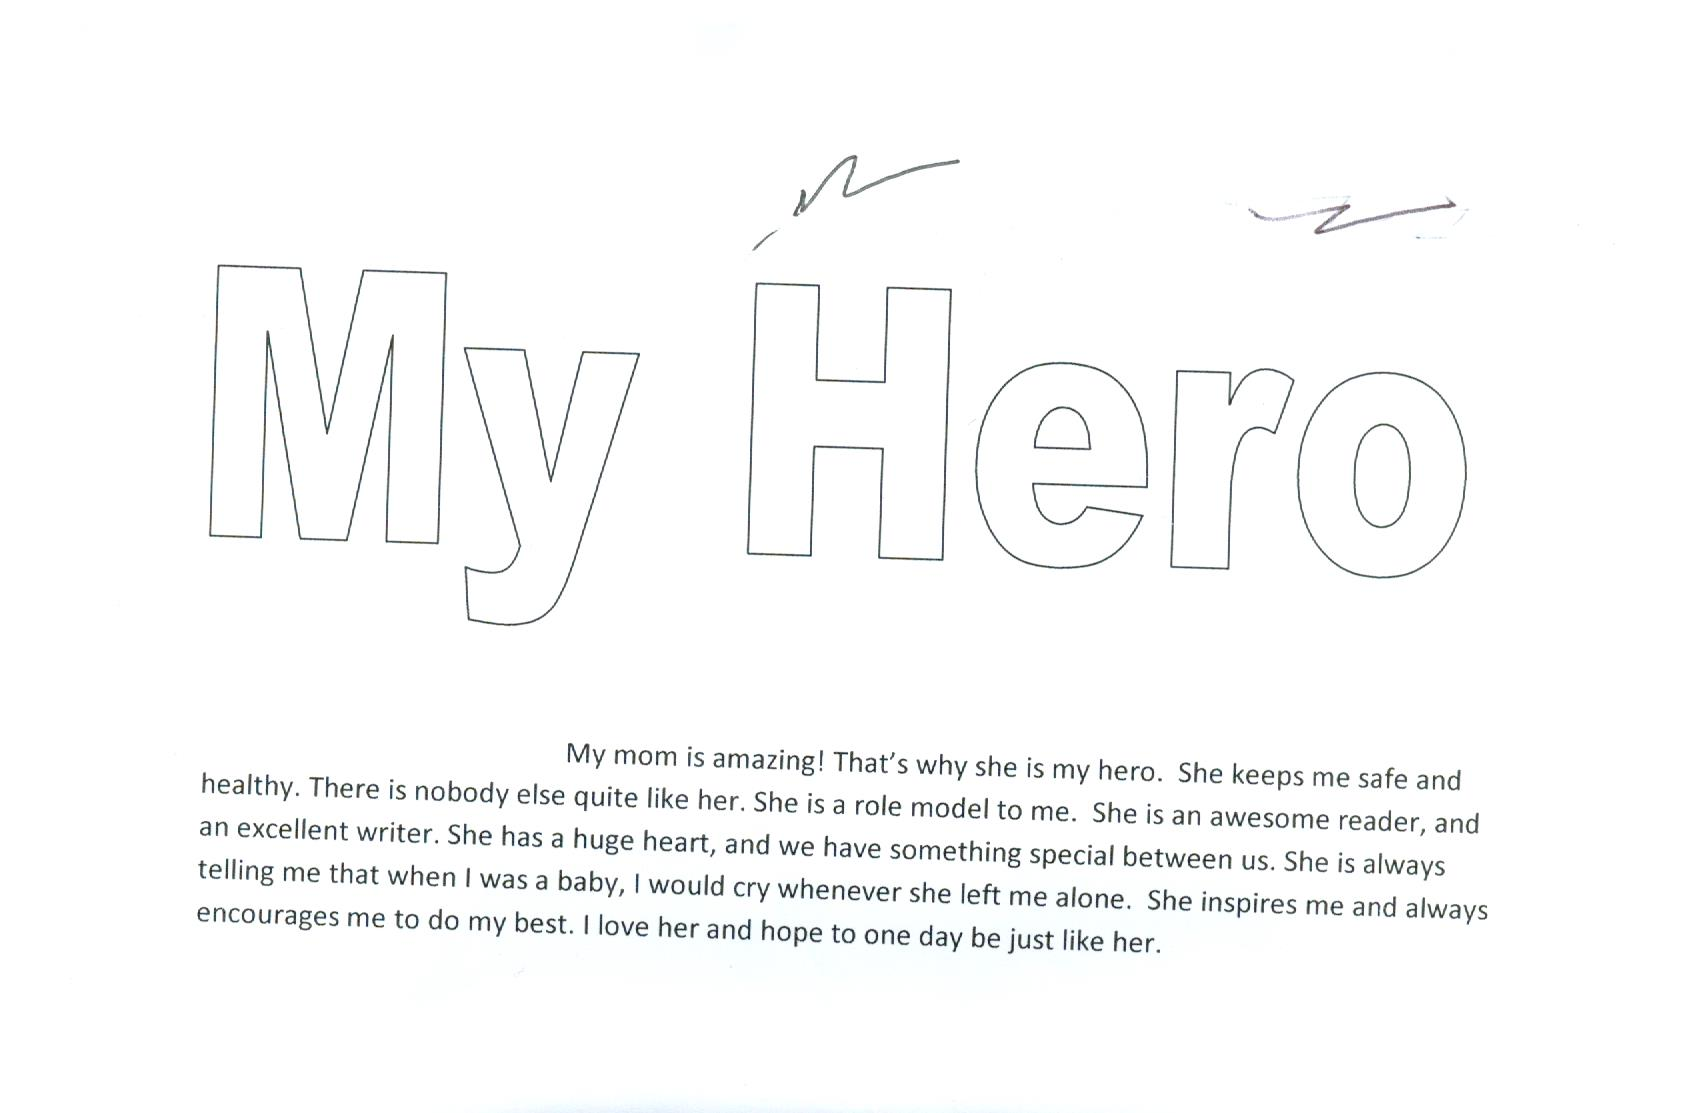 essay about a hero my mom Read my hero free essay and over 88,000 other research documents my hero my hero what is a hero i think a hero is someone who isn't afraid to be their self.